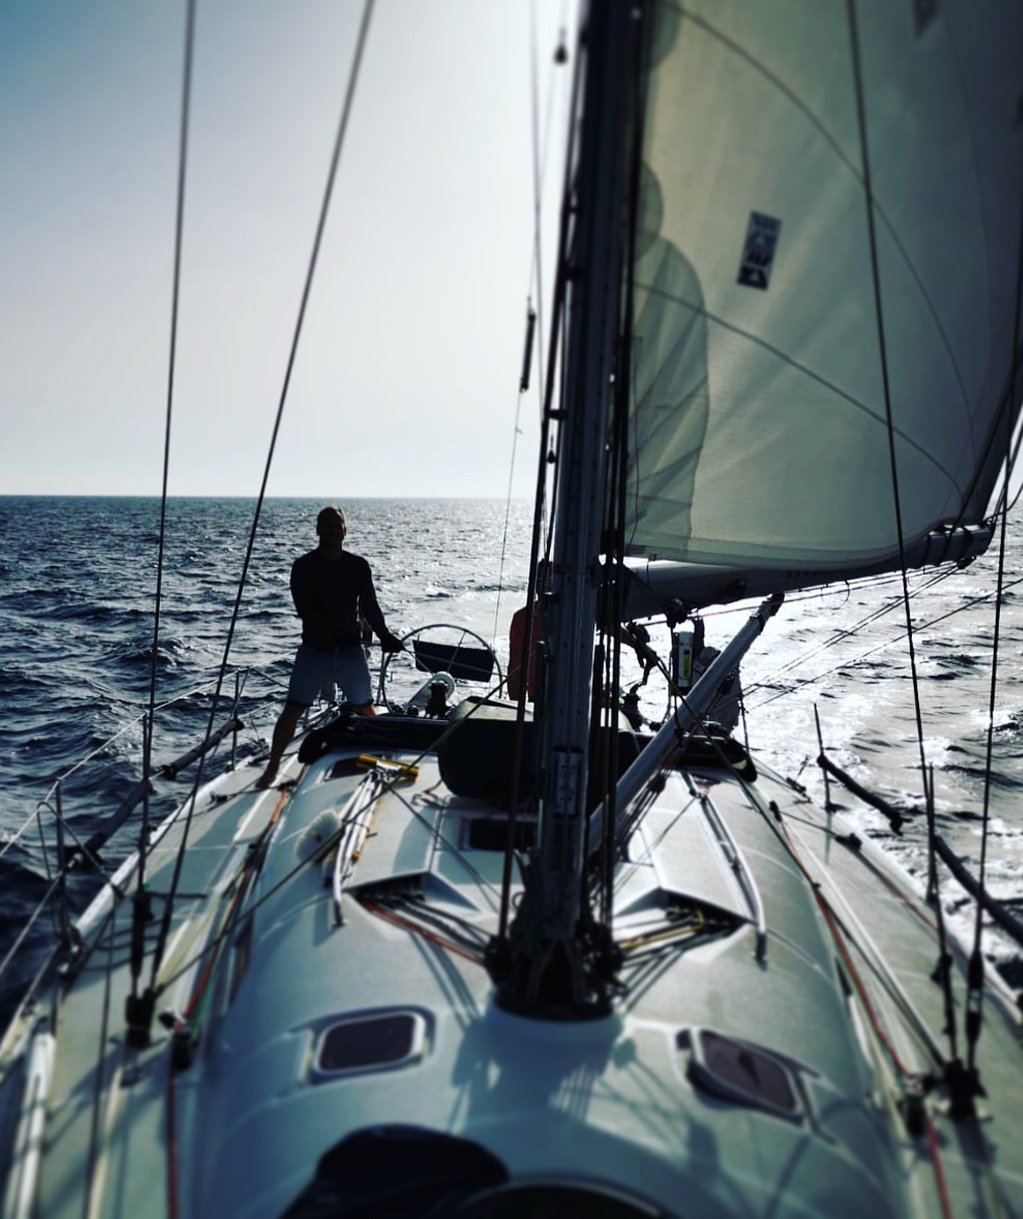 Yacht Racing on a boat from Gibraltar